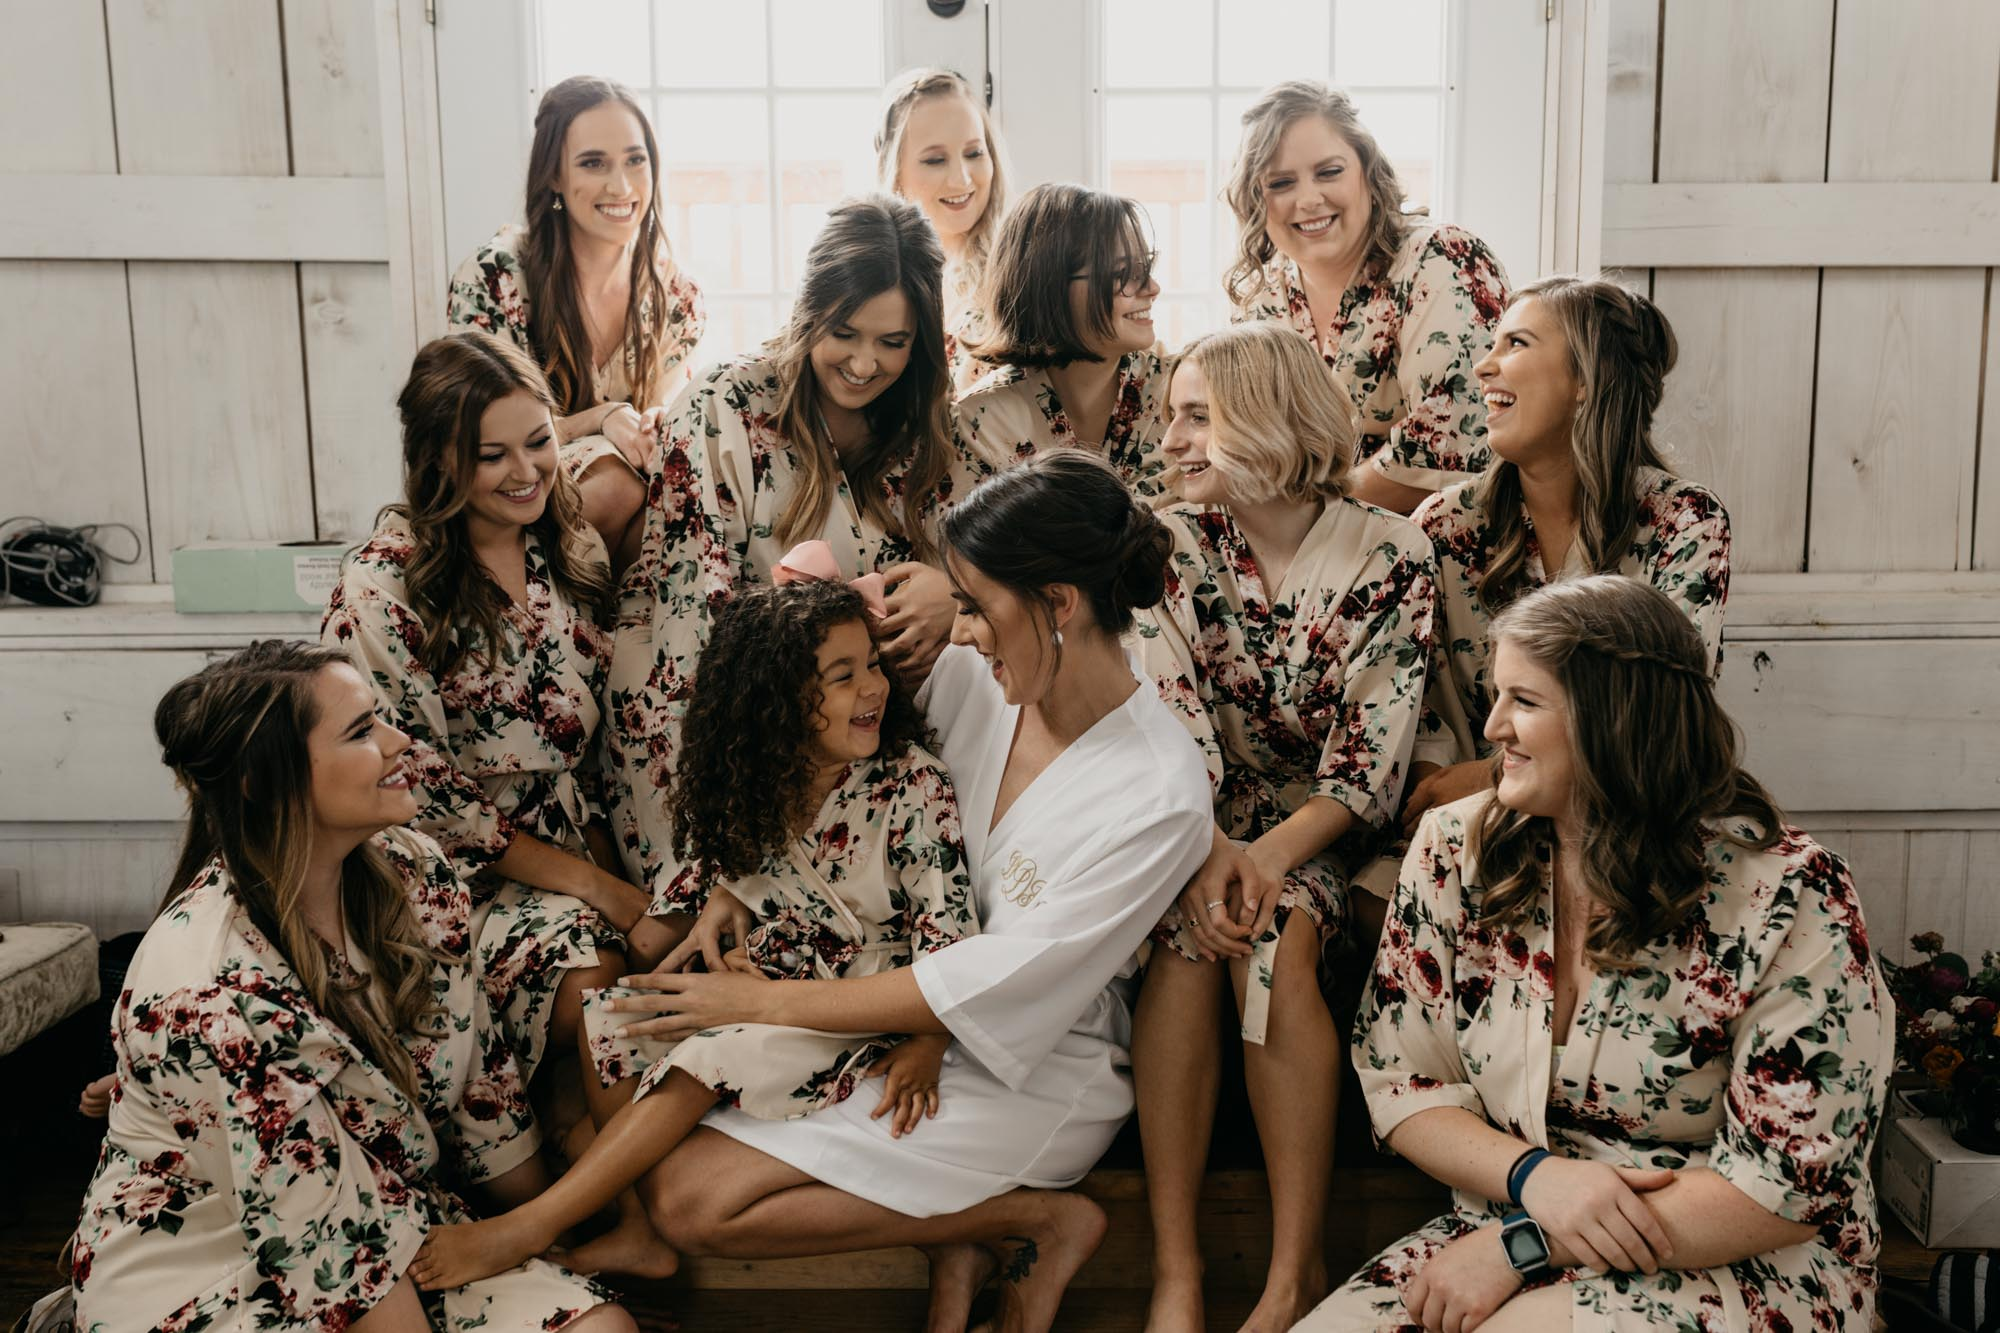 Bride and bridesmaids in getting ready robes in a cute rustic vintage room